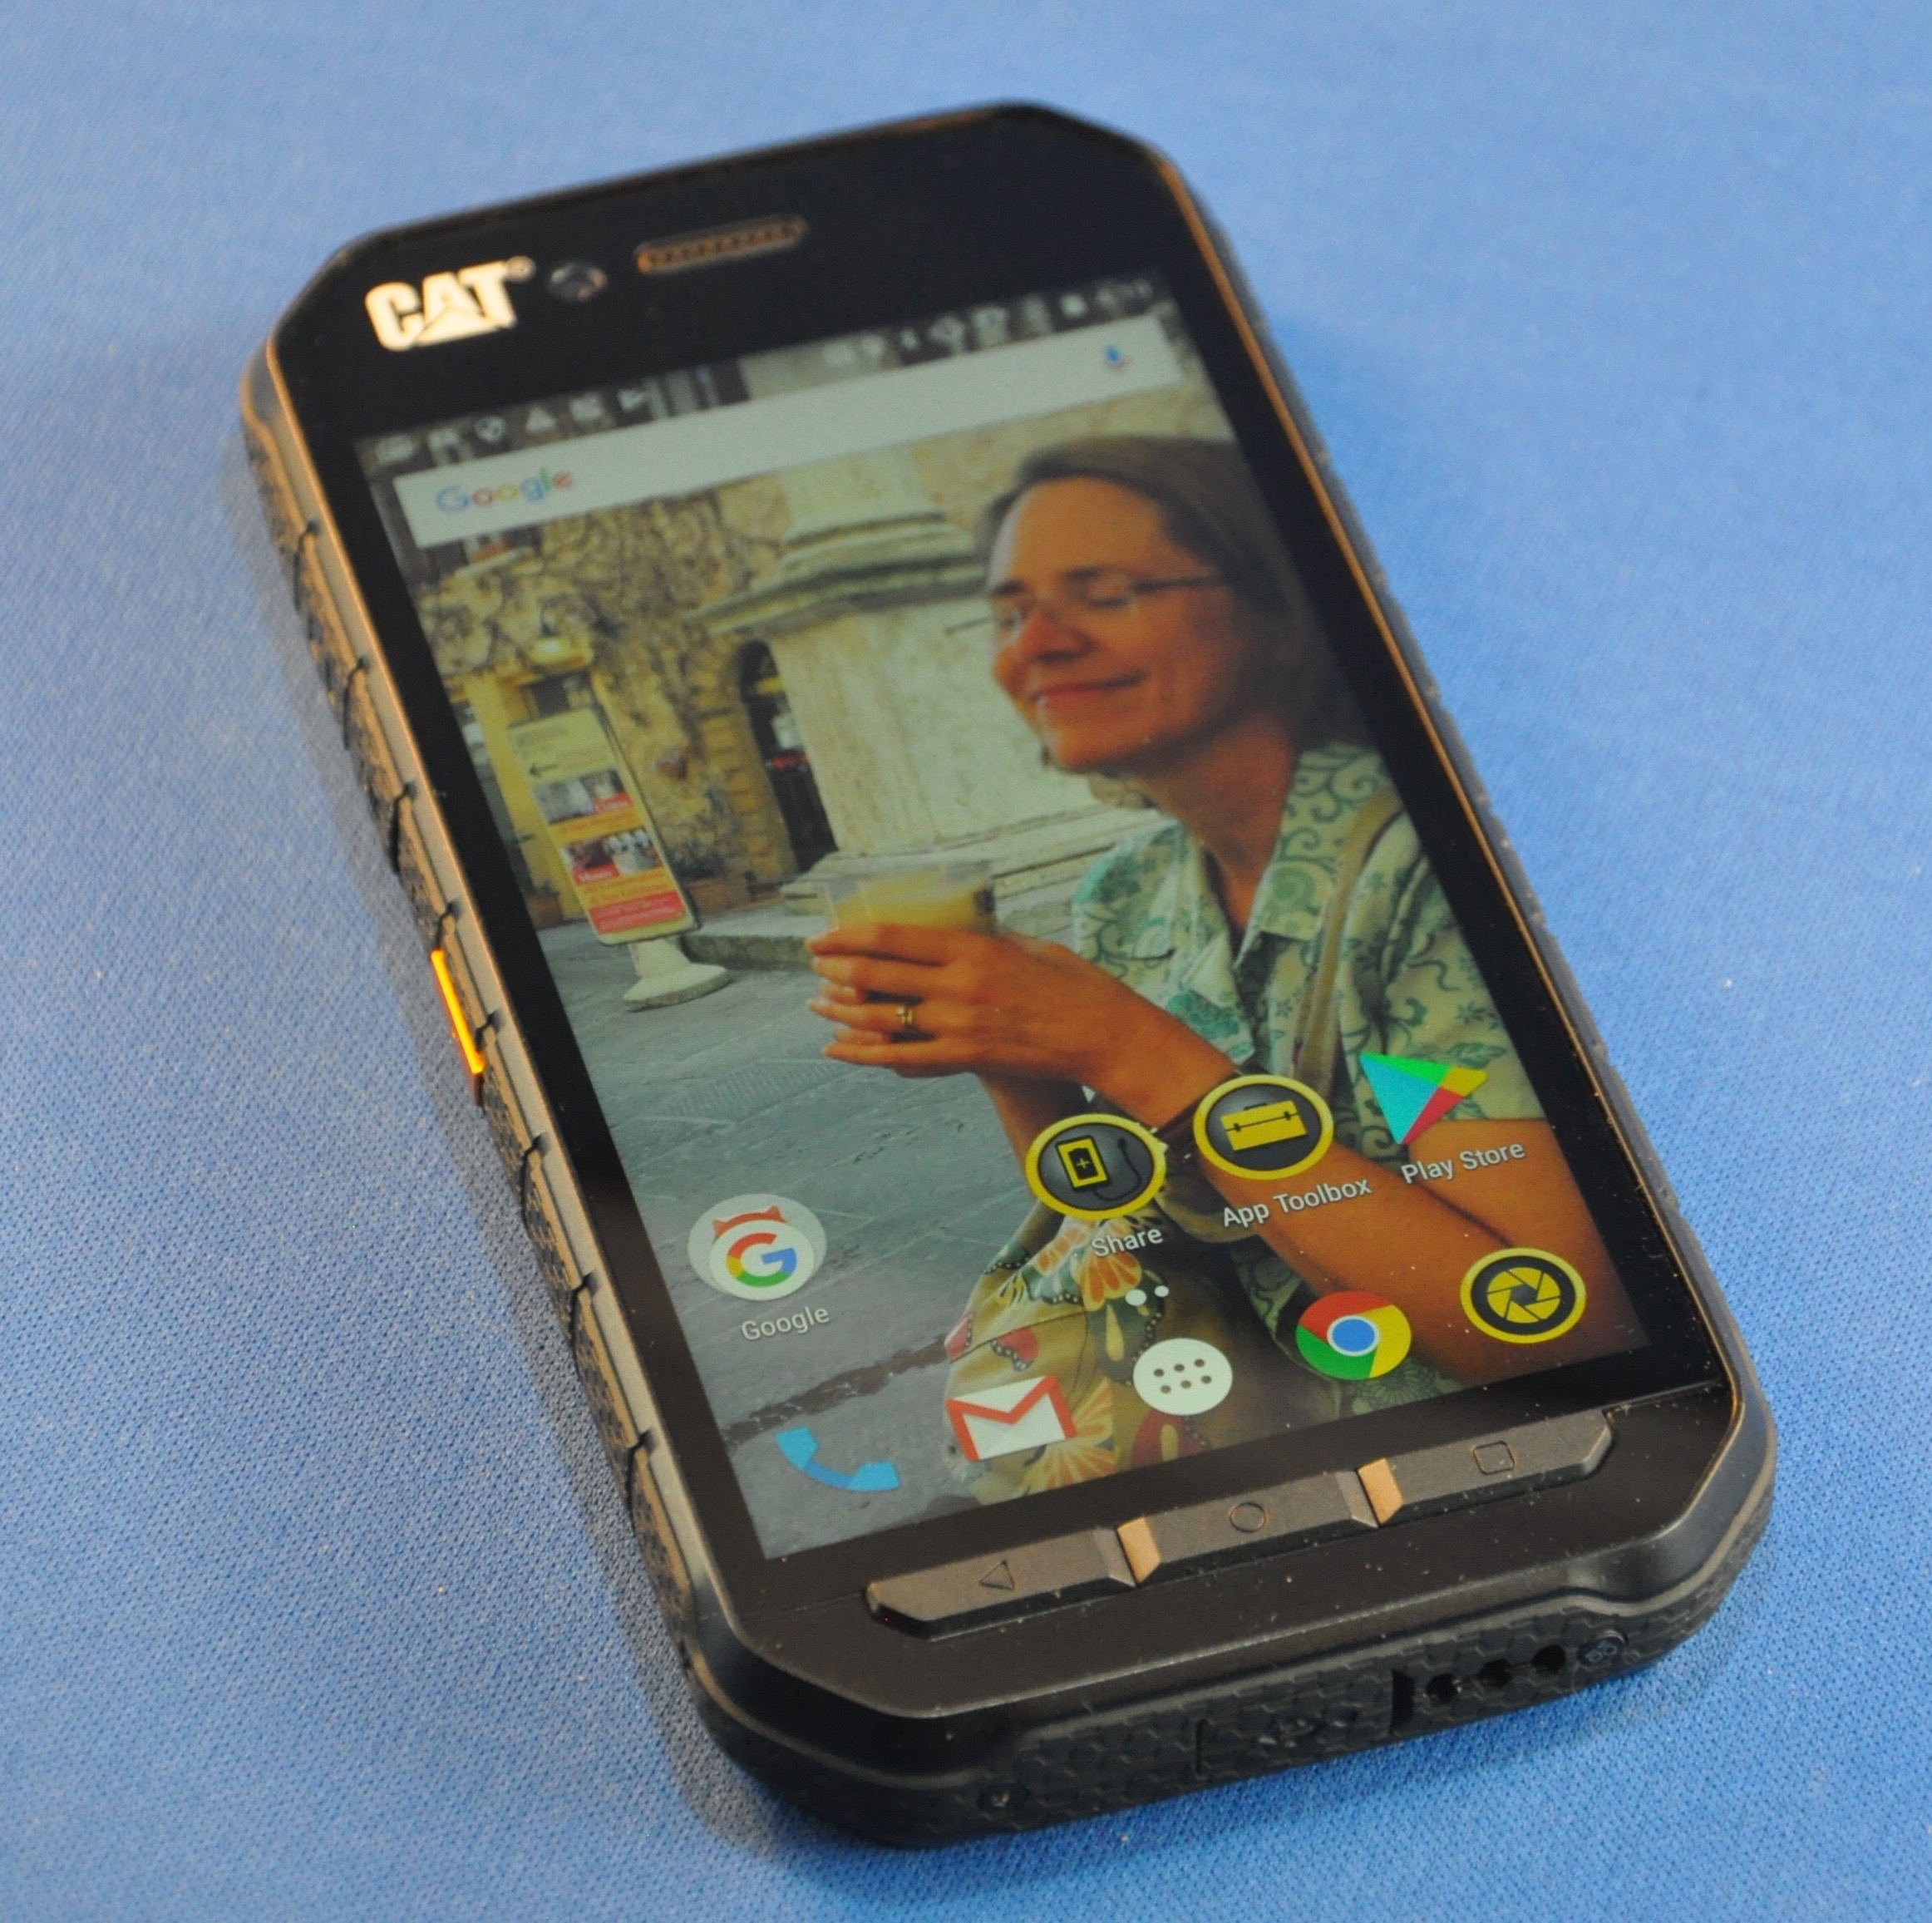 Cat Phones Cat S41 rugged smartphone review – The Gadgeteer